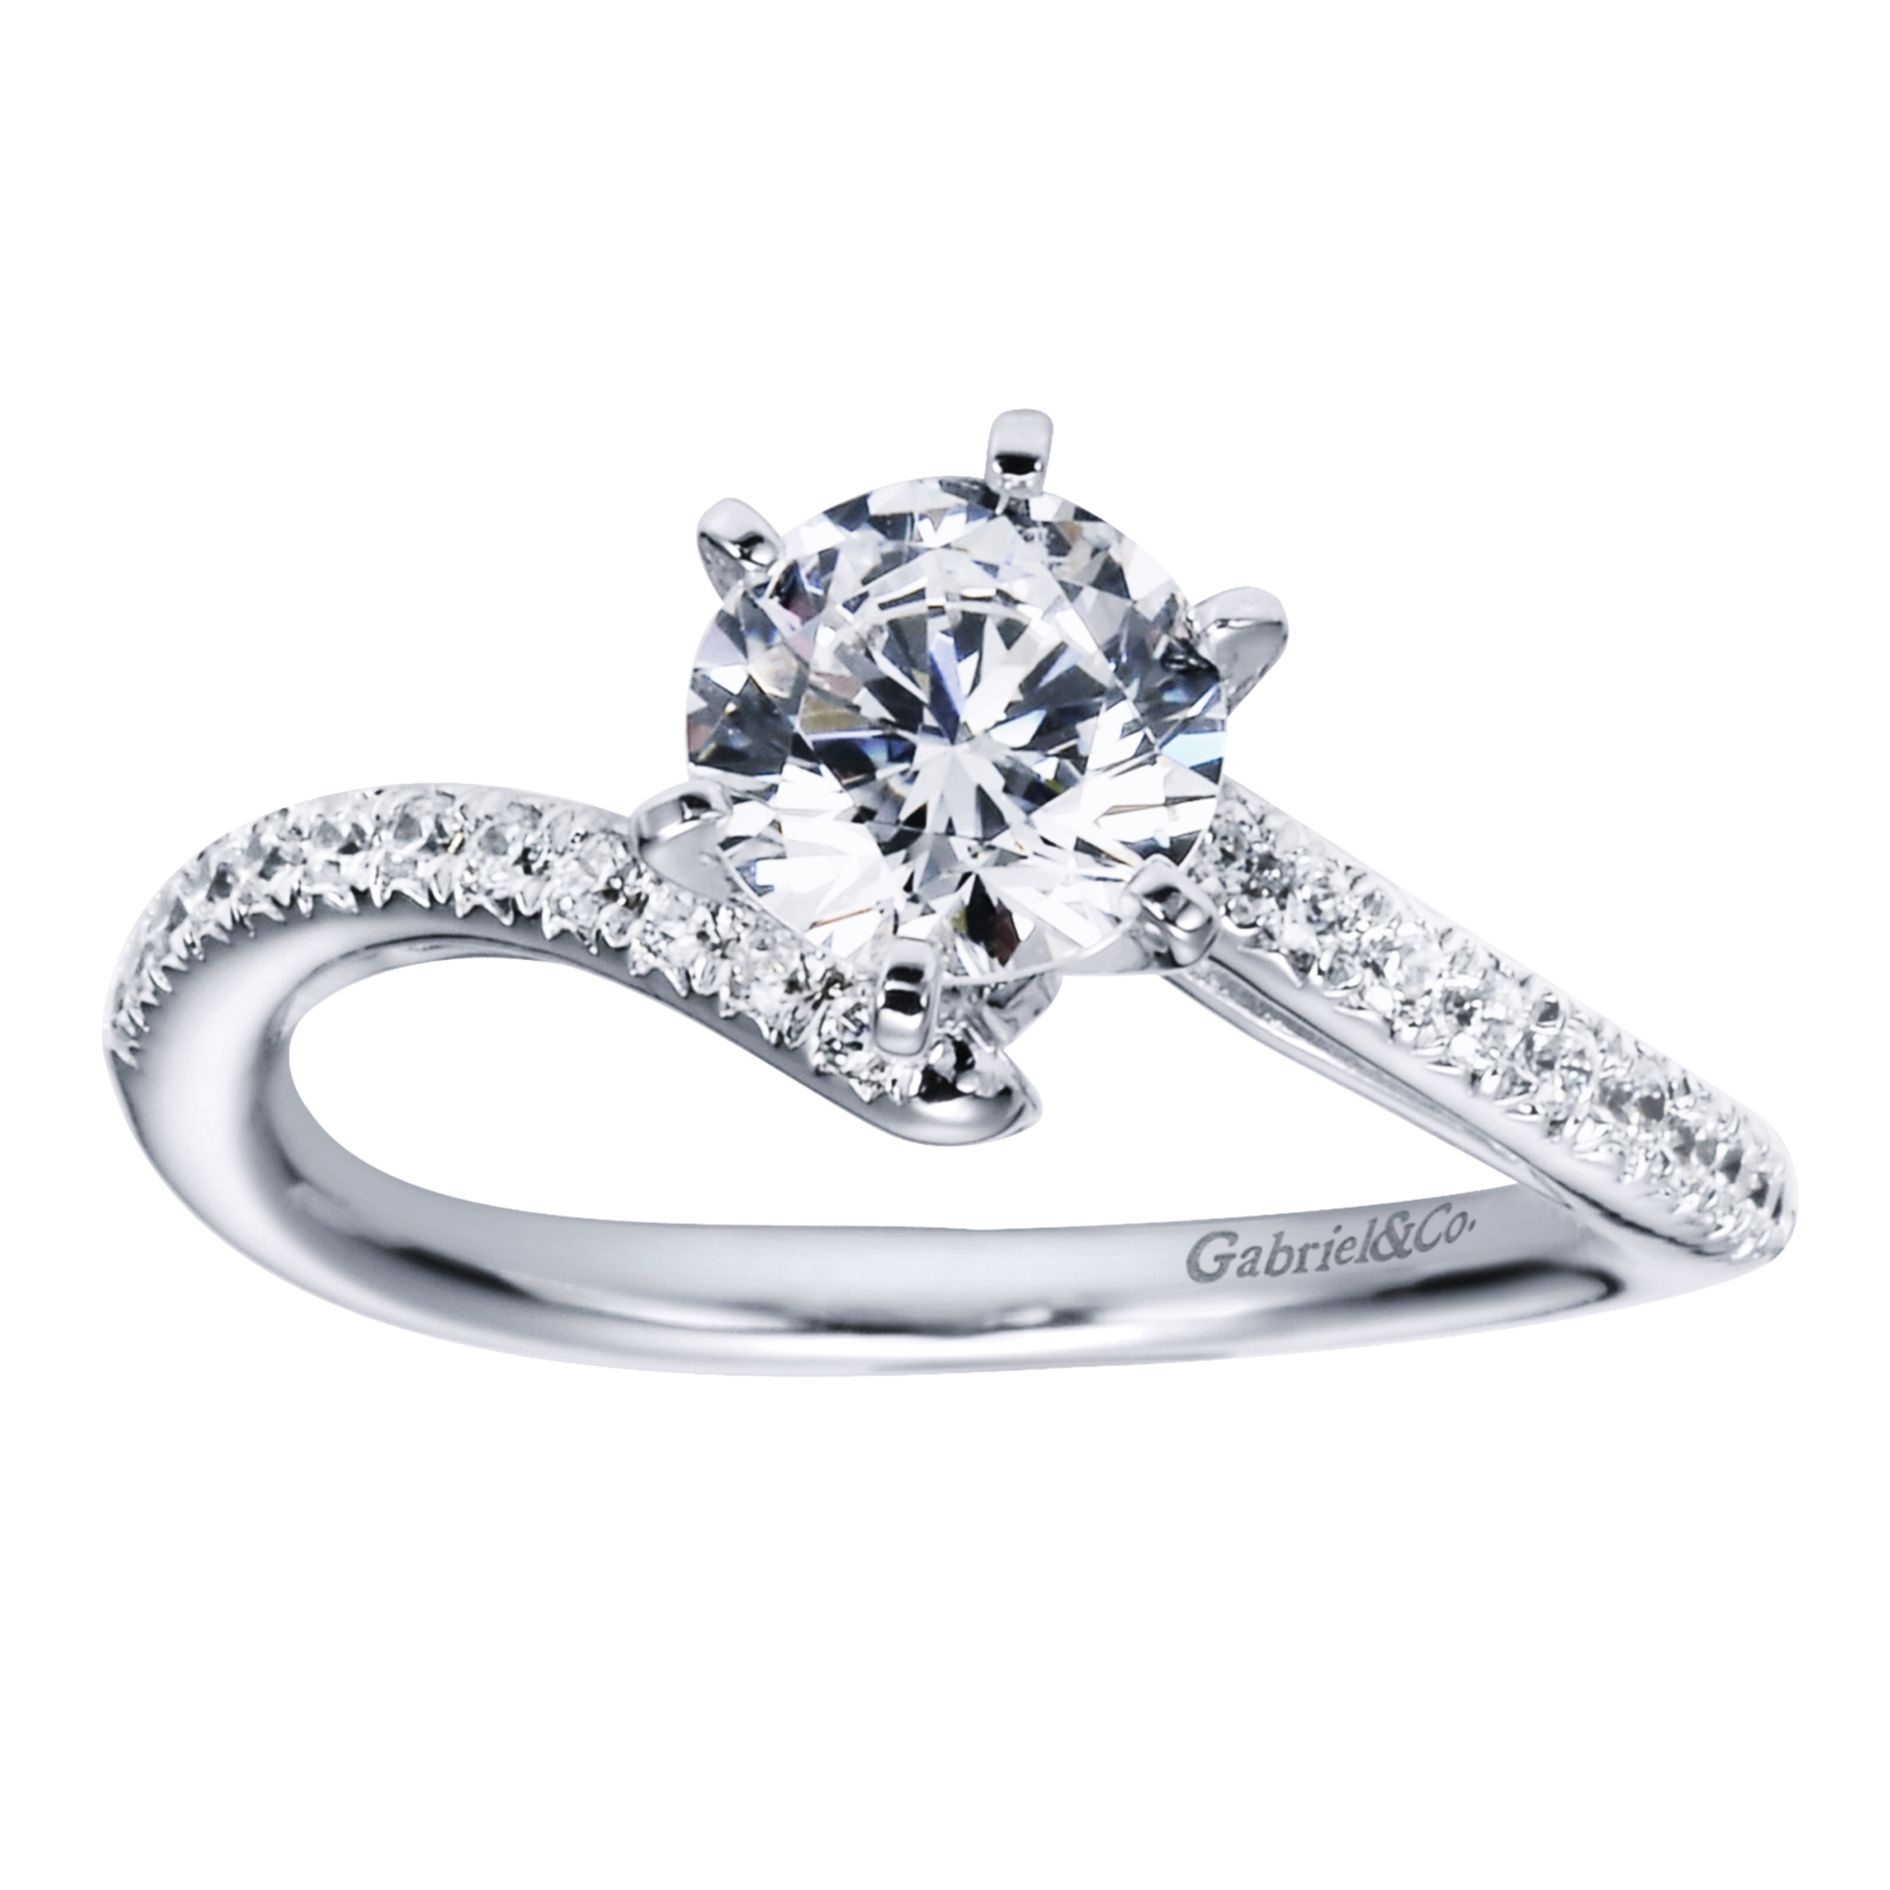 Engagement Rings - WHITE GOLD ROUND BYPASS DIAMOND ENGAGEMENT RING - image #5